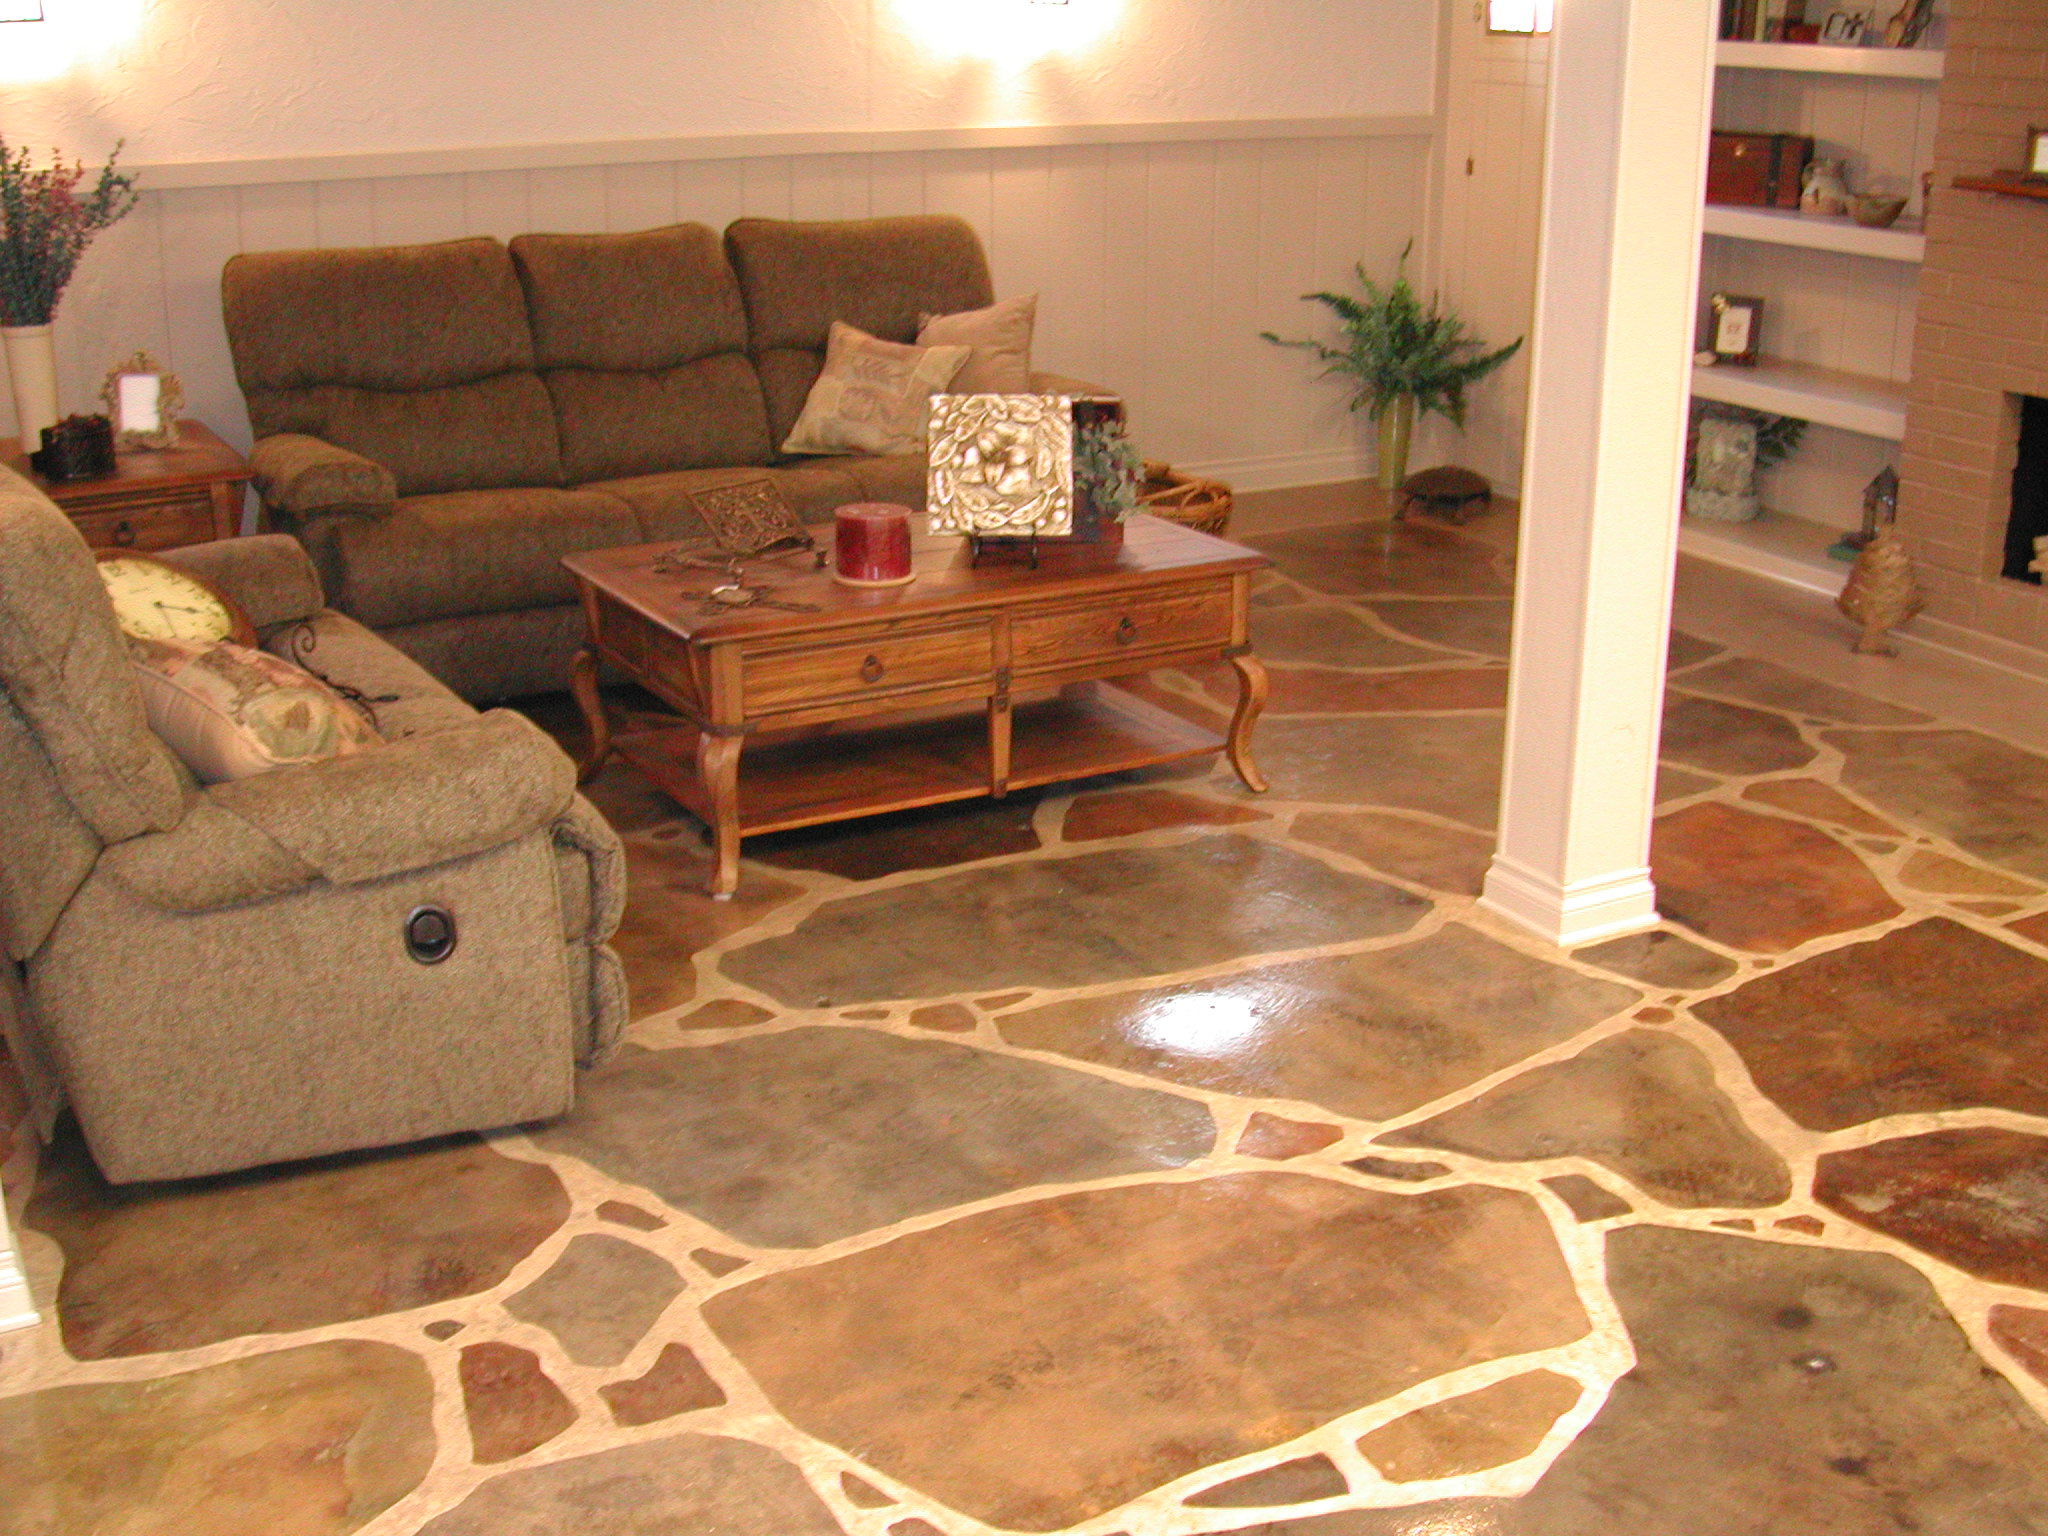 Award-winning acid-stained, faux finish, flagstone floor in residential finished basement, installed by Premier Veneers in 2002 after removing black cutback adhesive.